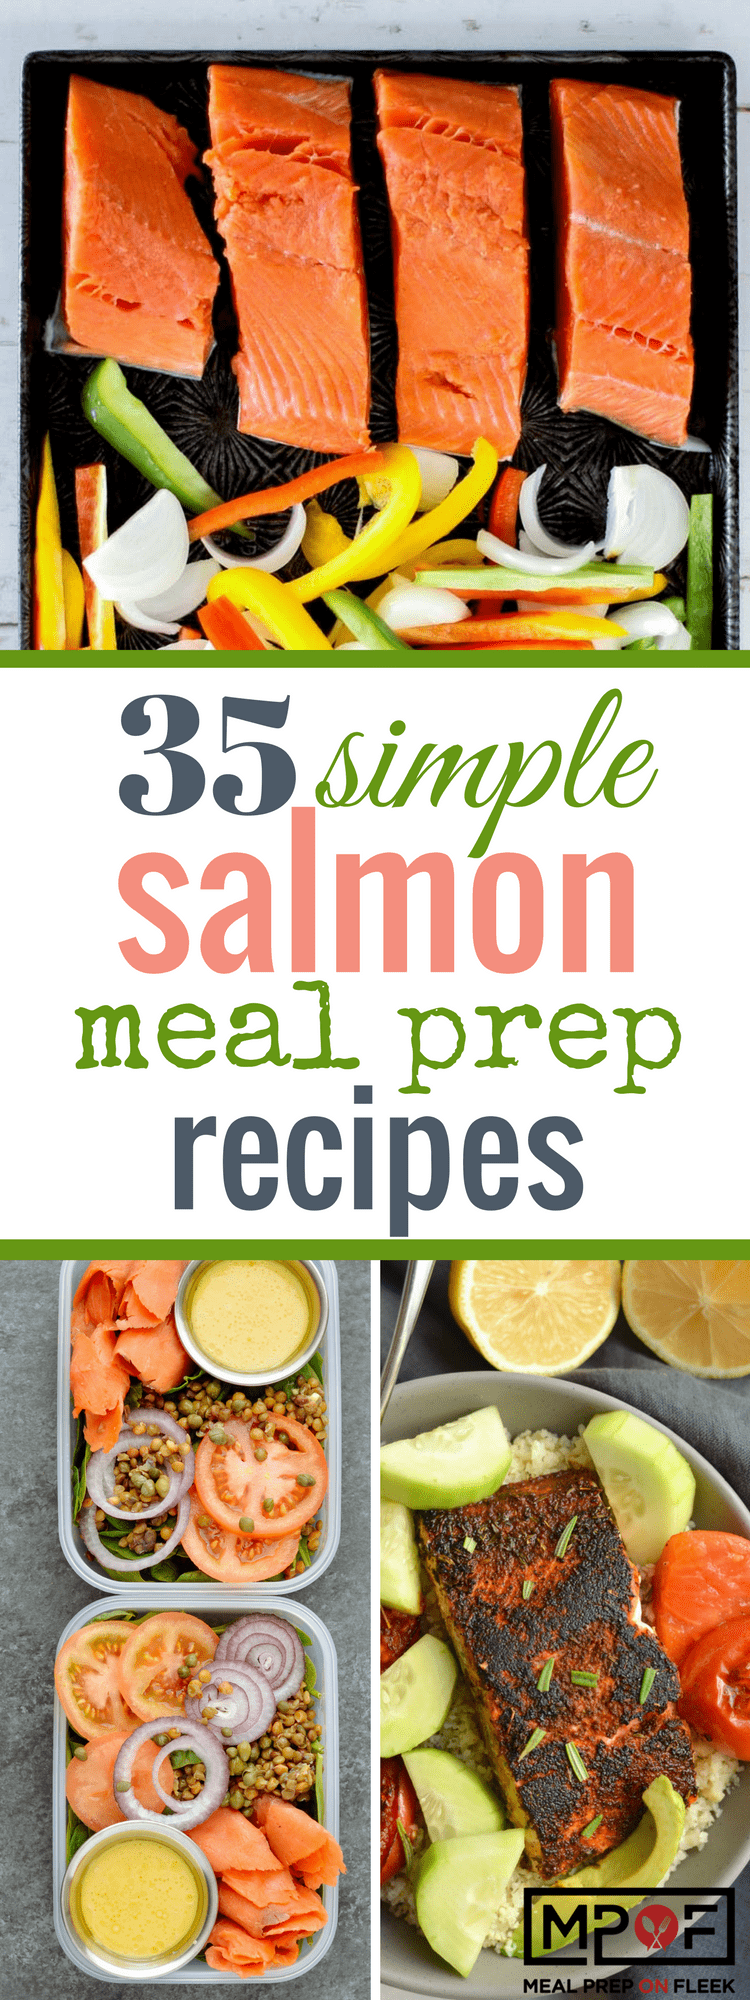 35 Simple Salmon Meal Prep Recipes